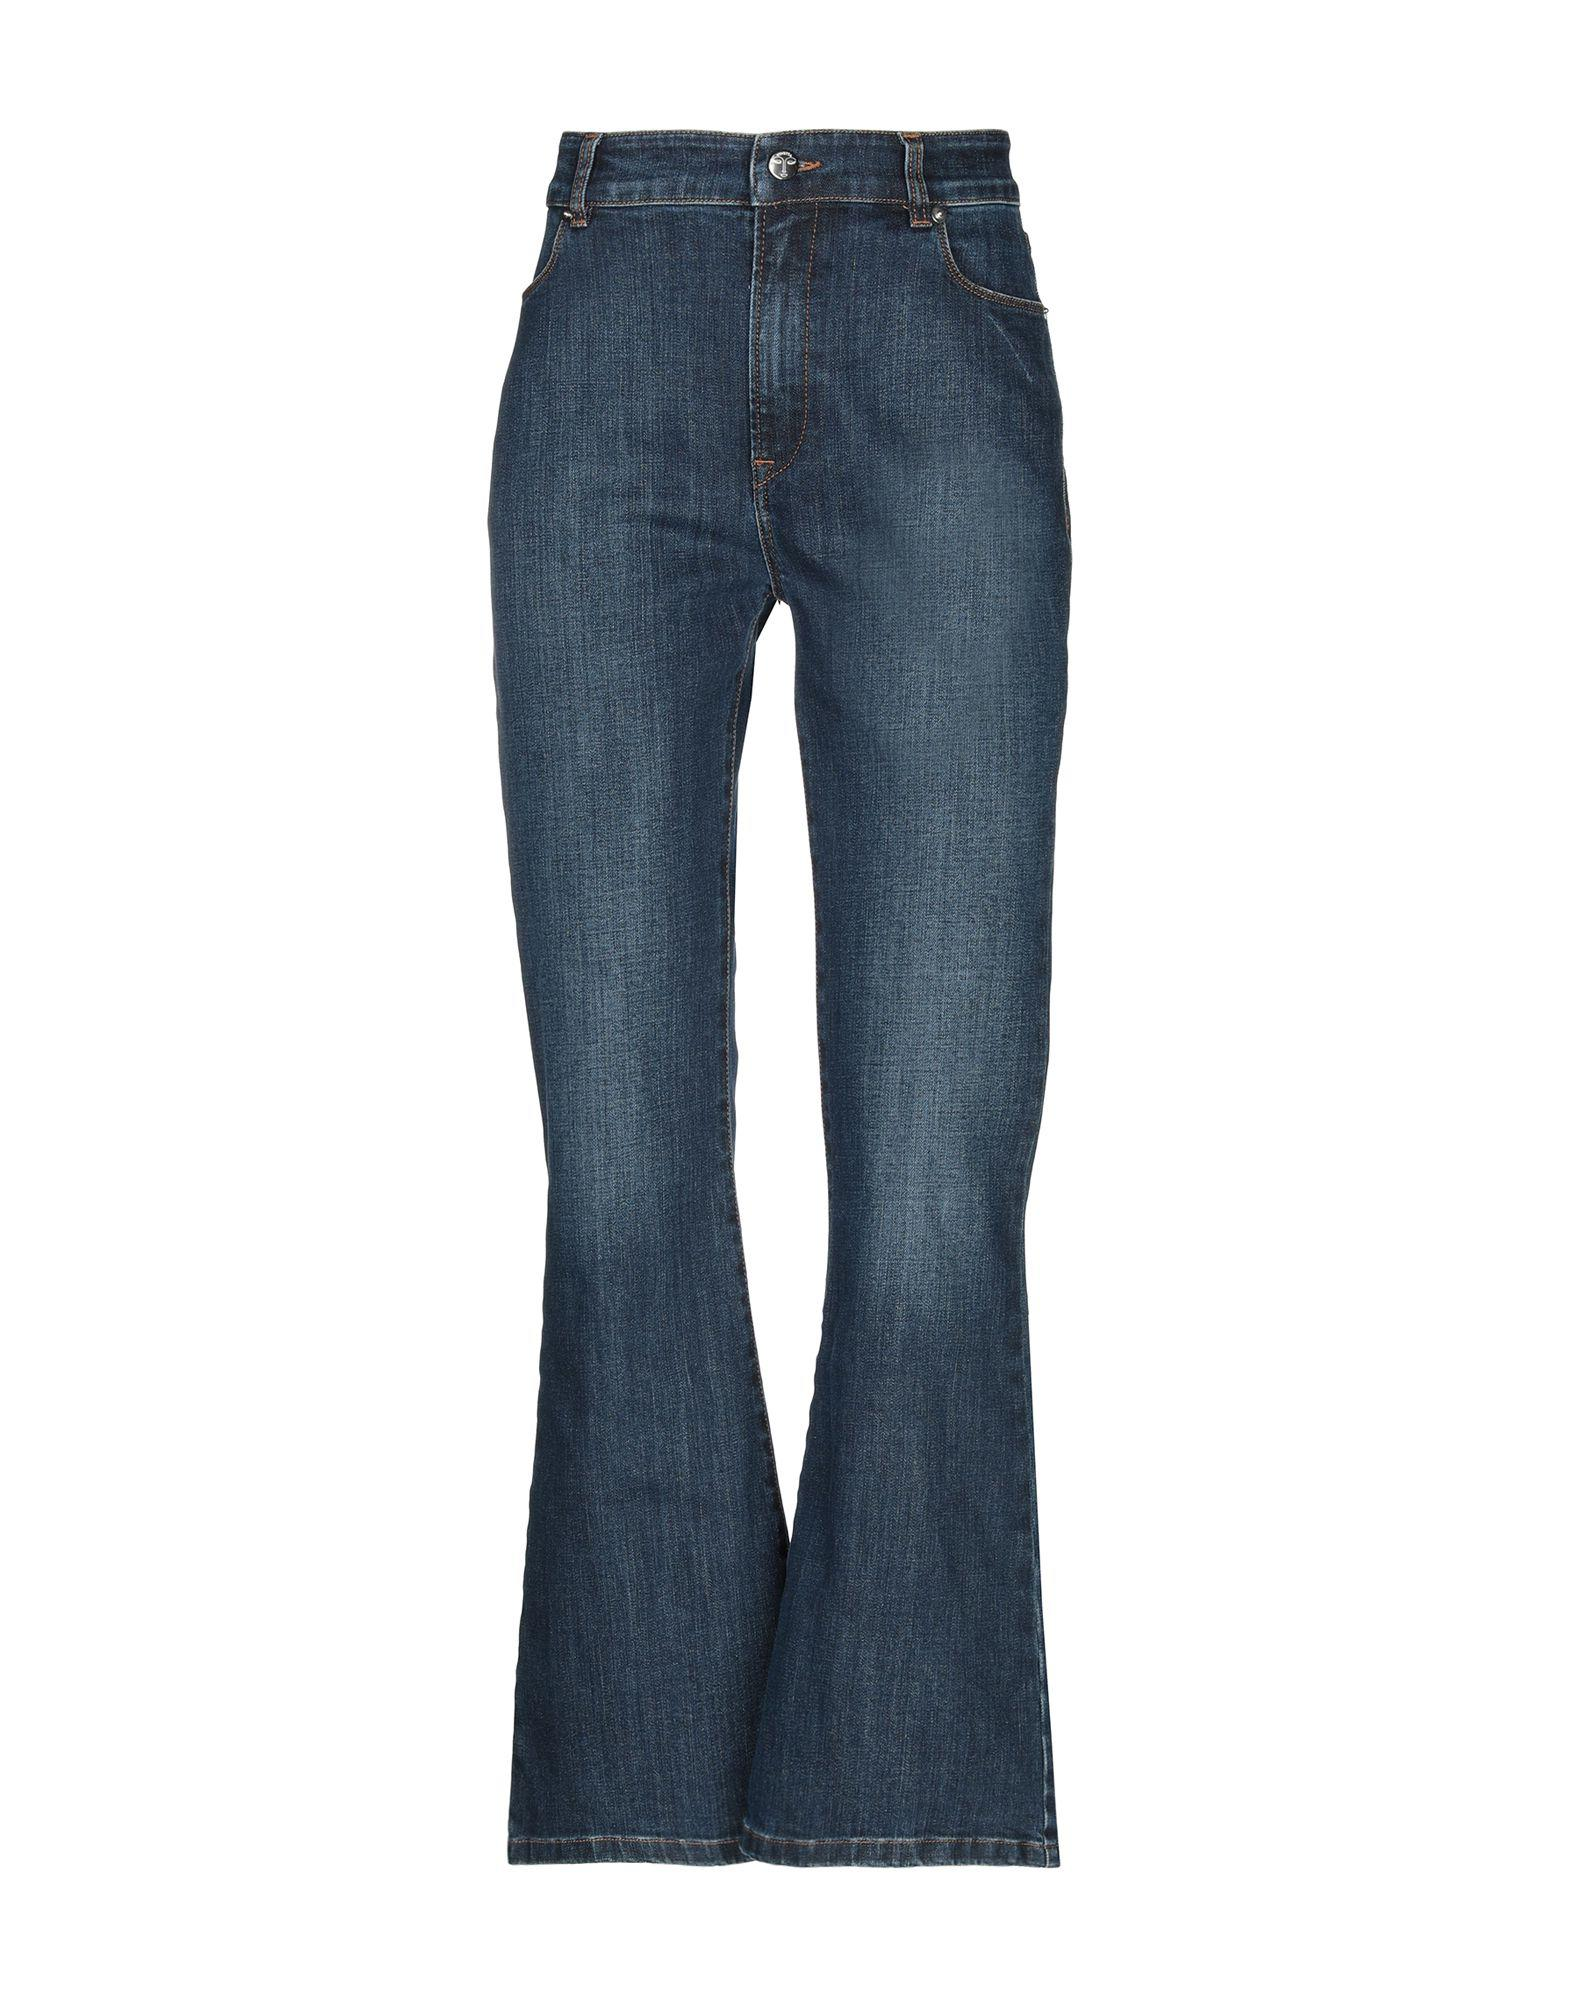 97da96d67e Vivetta Denim Trousers in Blue - Lyst